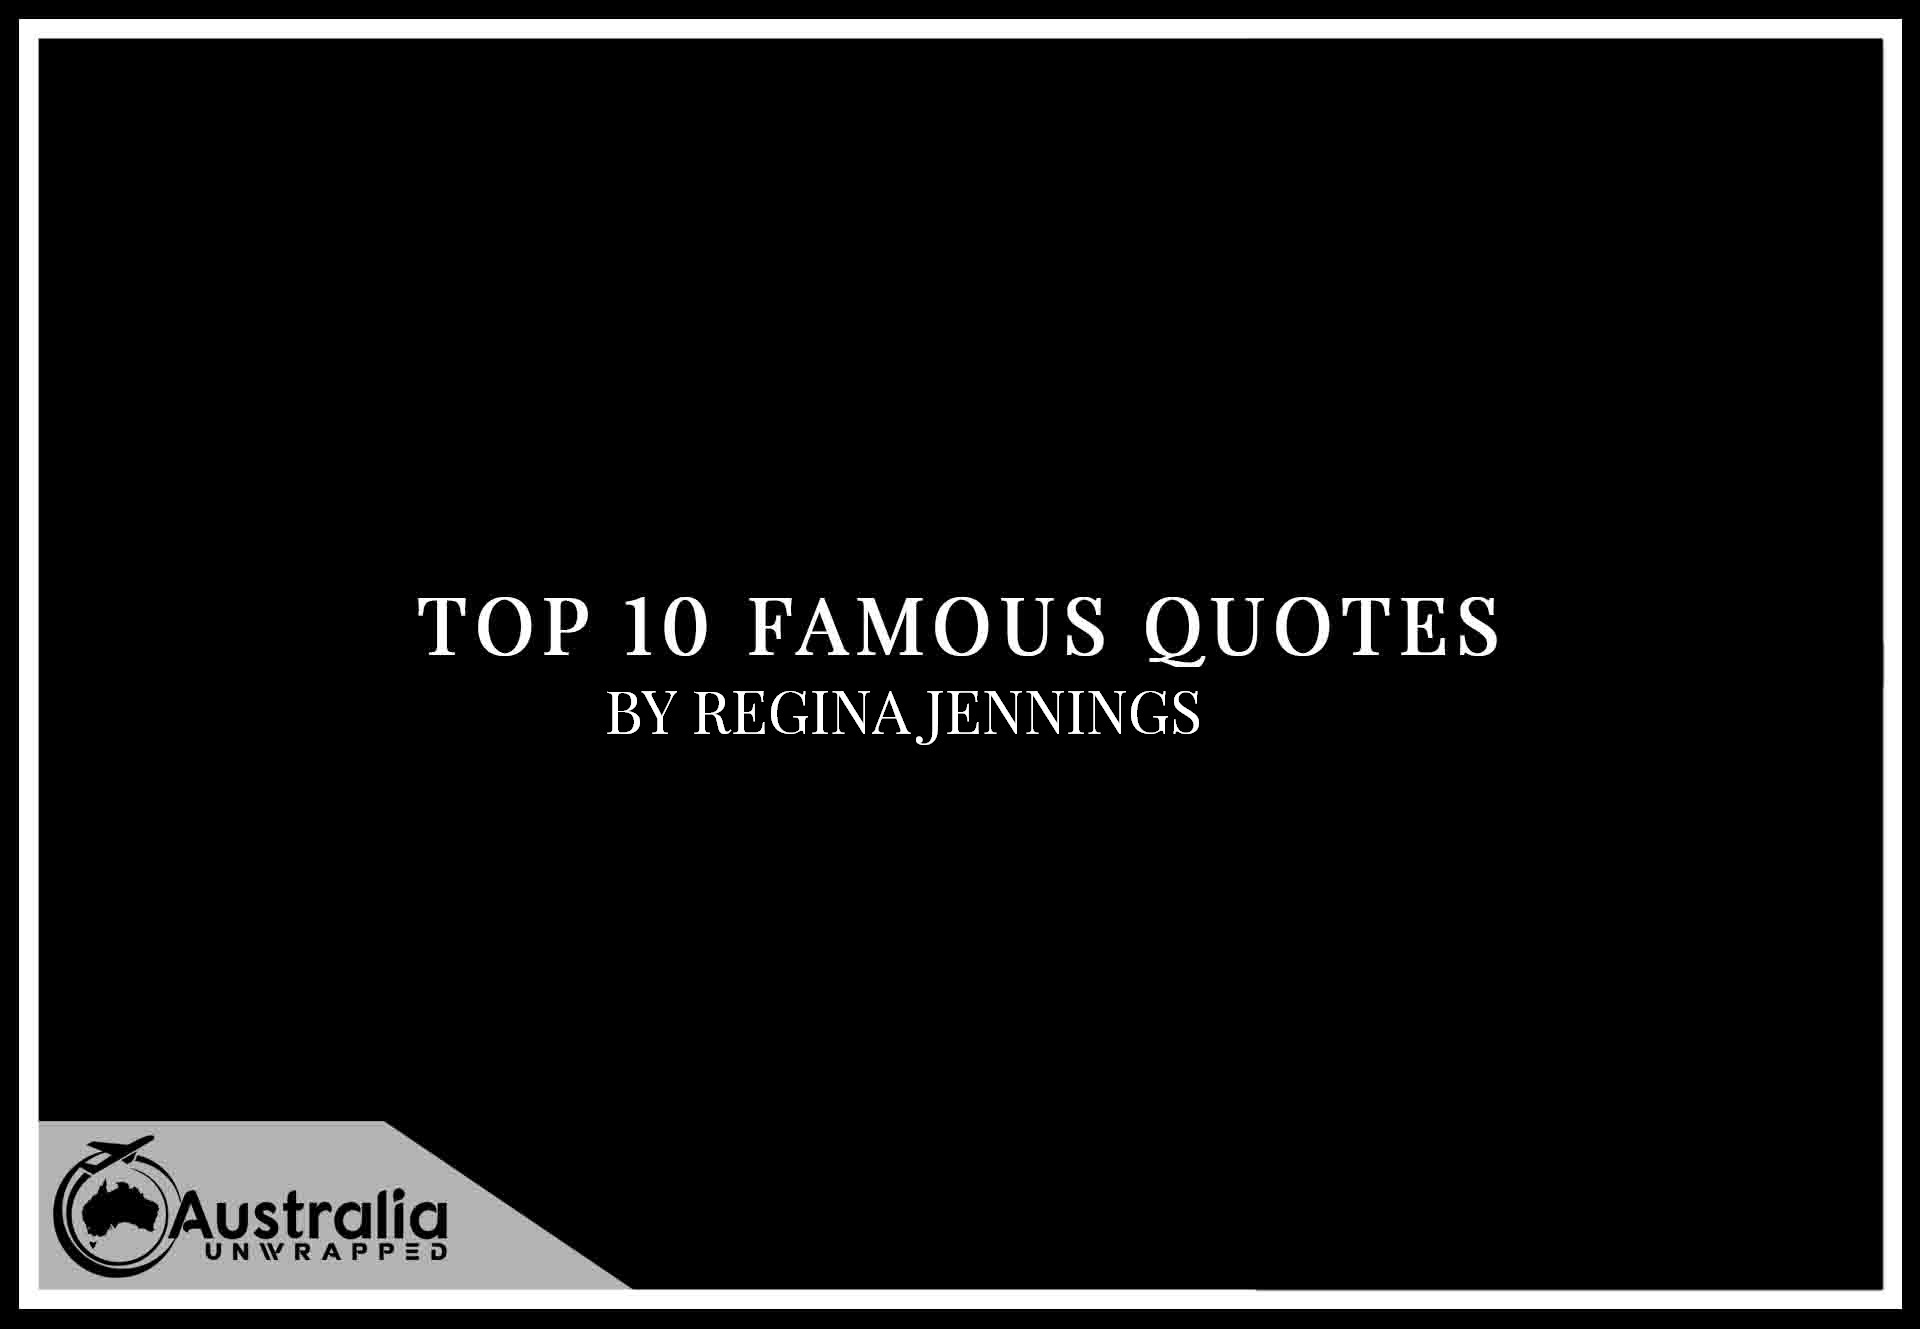 Top 10 Famous Quotes by Author Regina Jennings